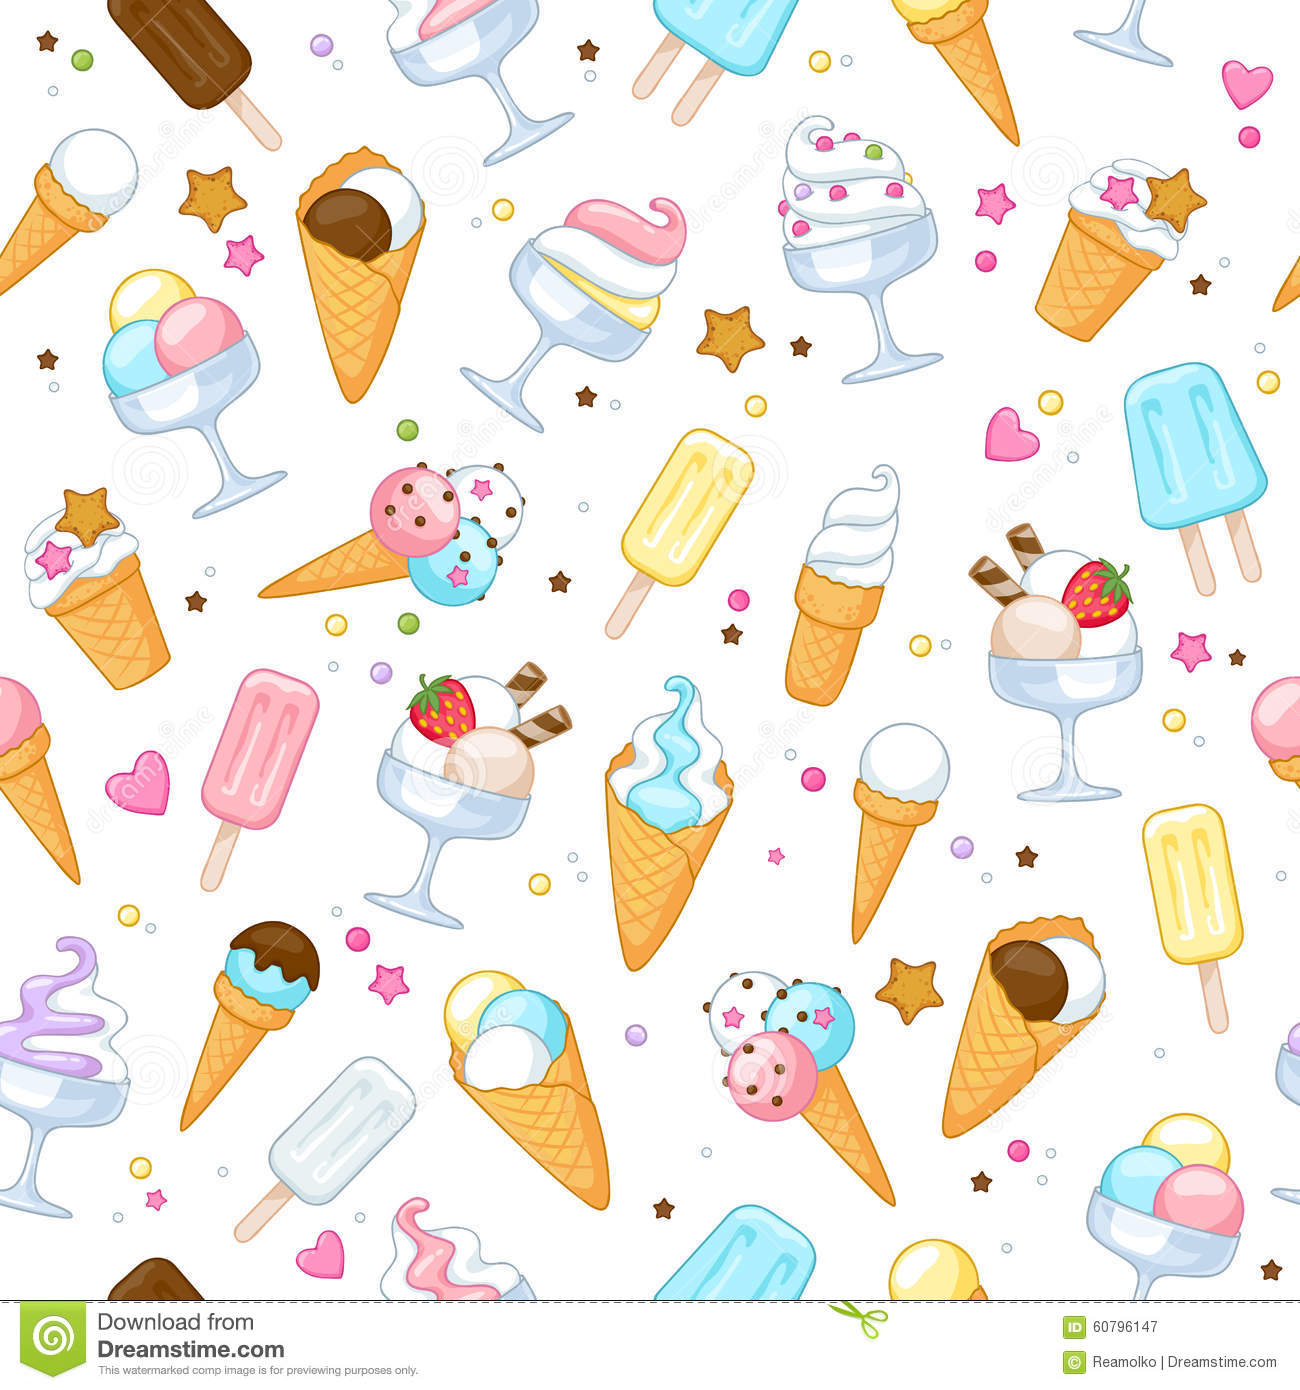 Ice Cream Images Ice Creams Wallpaper And Background: Colorful Sweet Ice Cream Icons Background Stock Vector